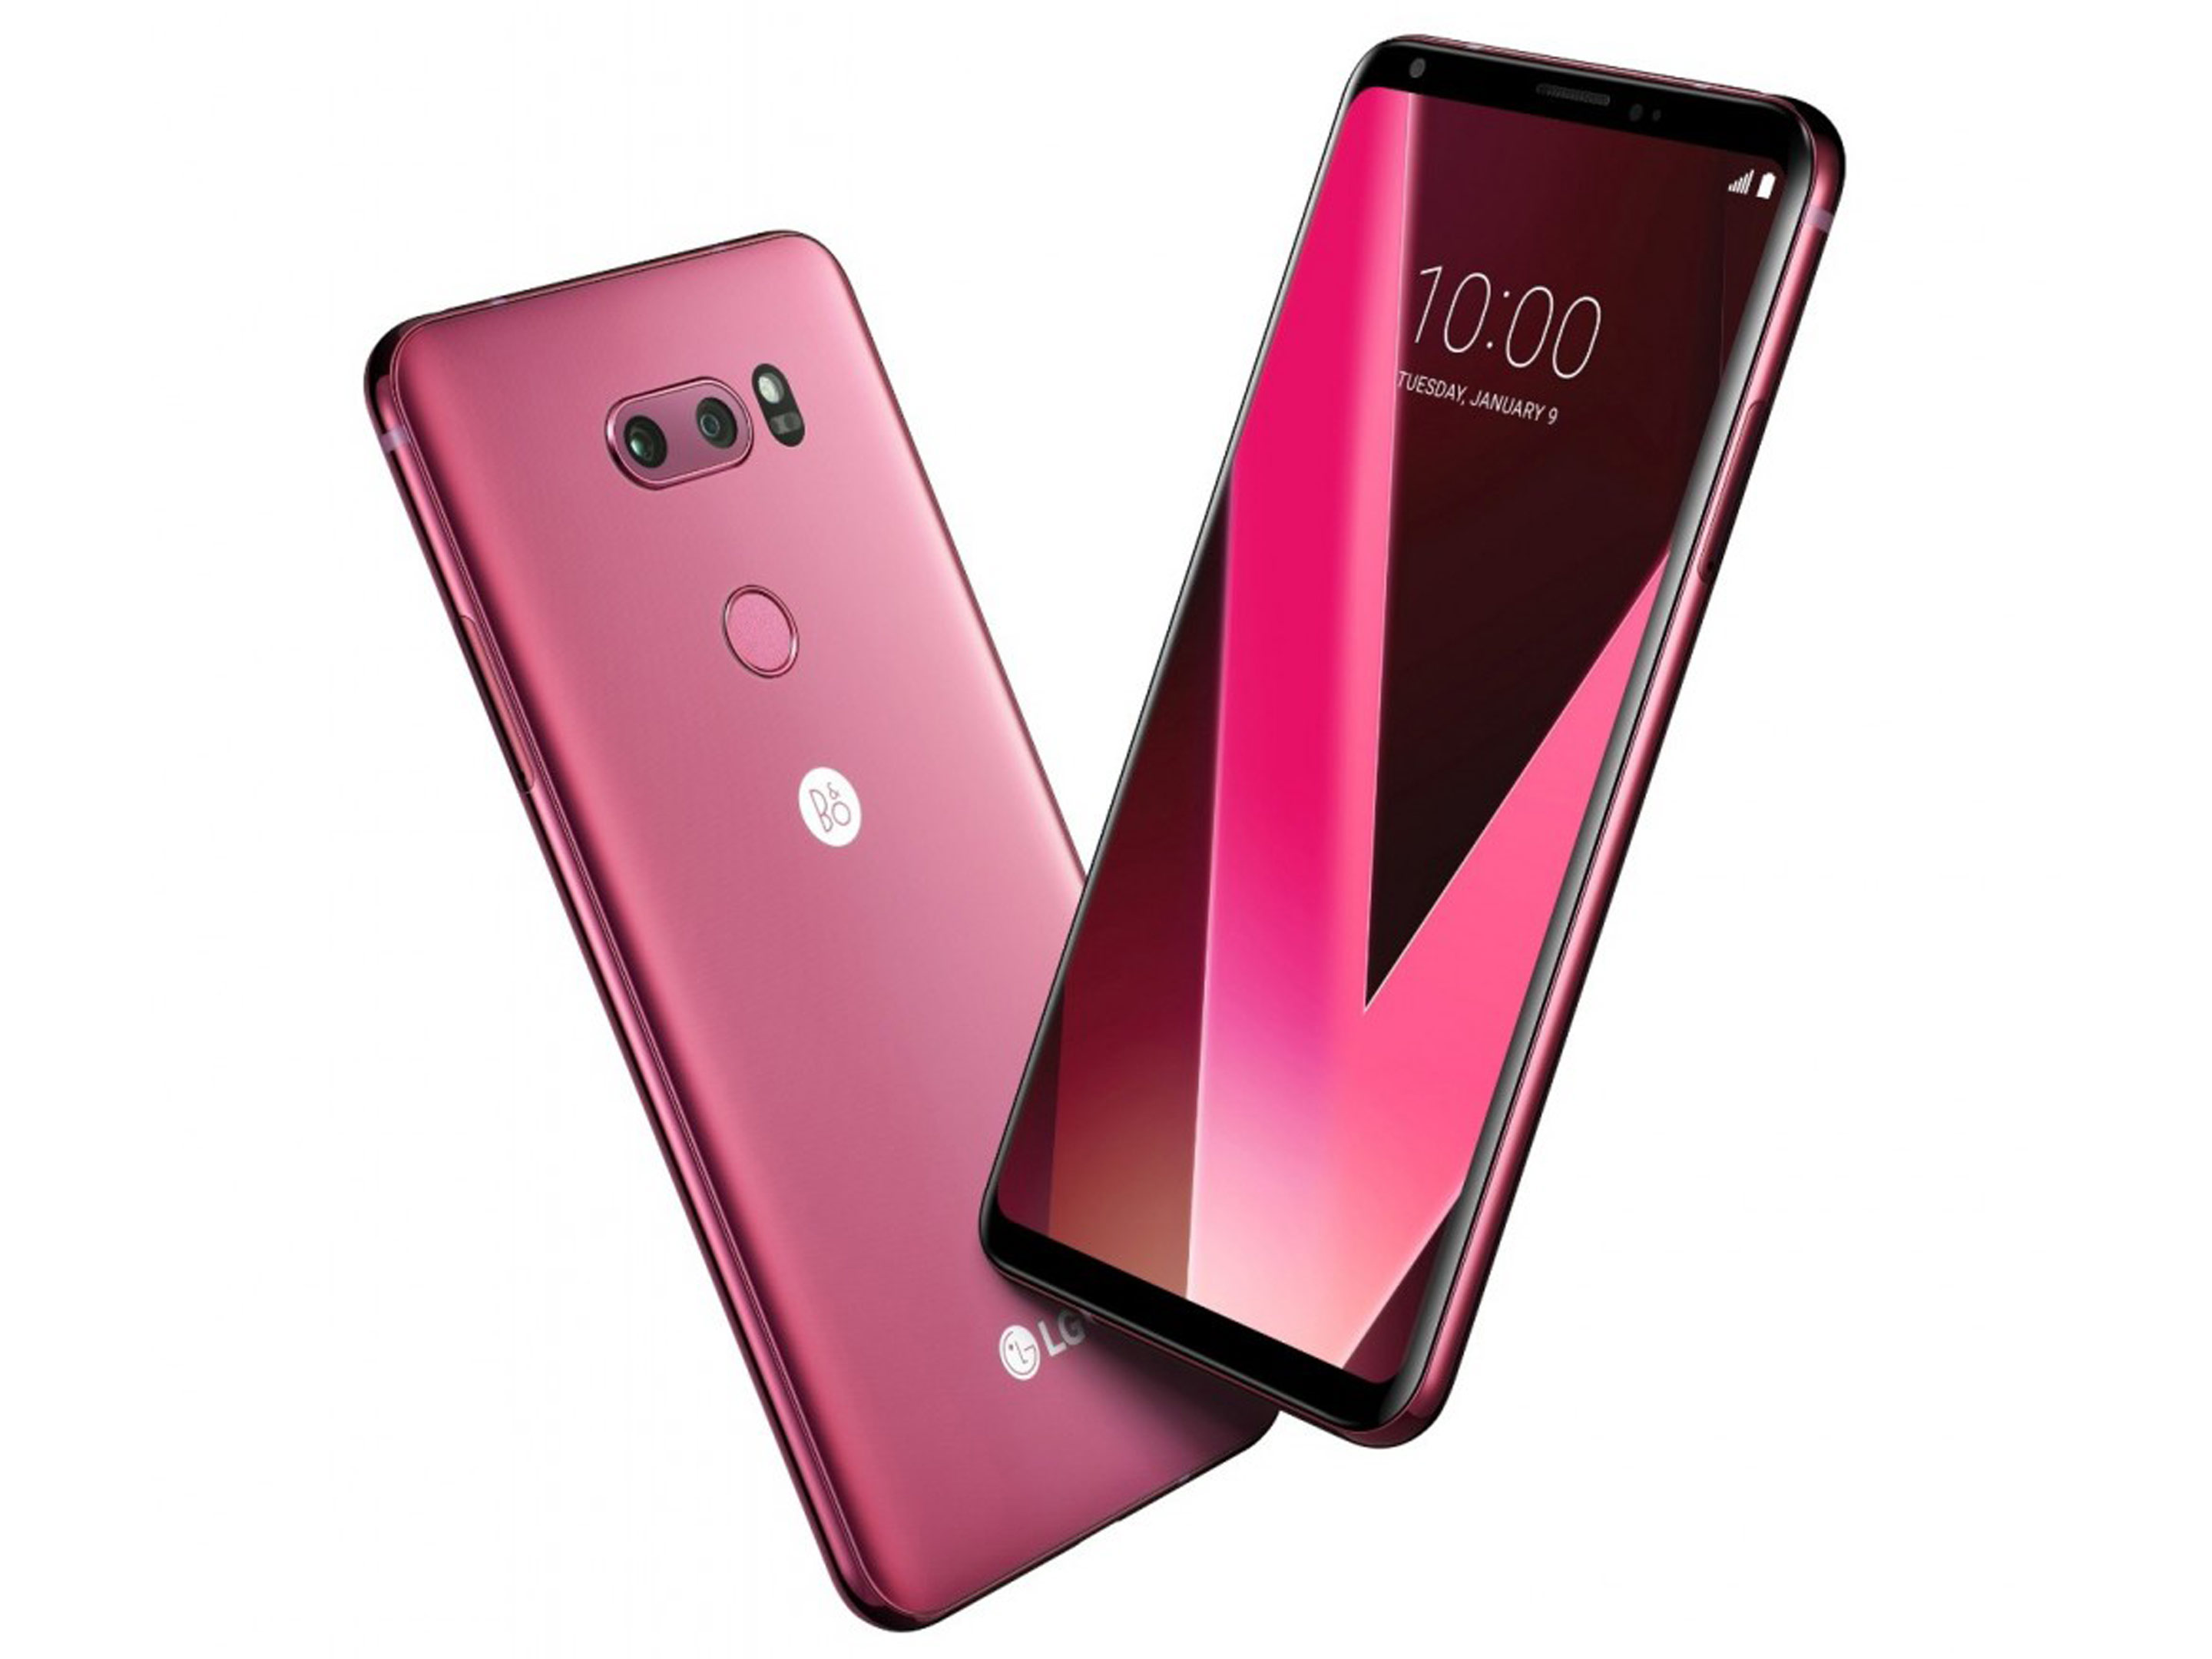 LG V30 in raspberry rose, front and back